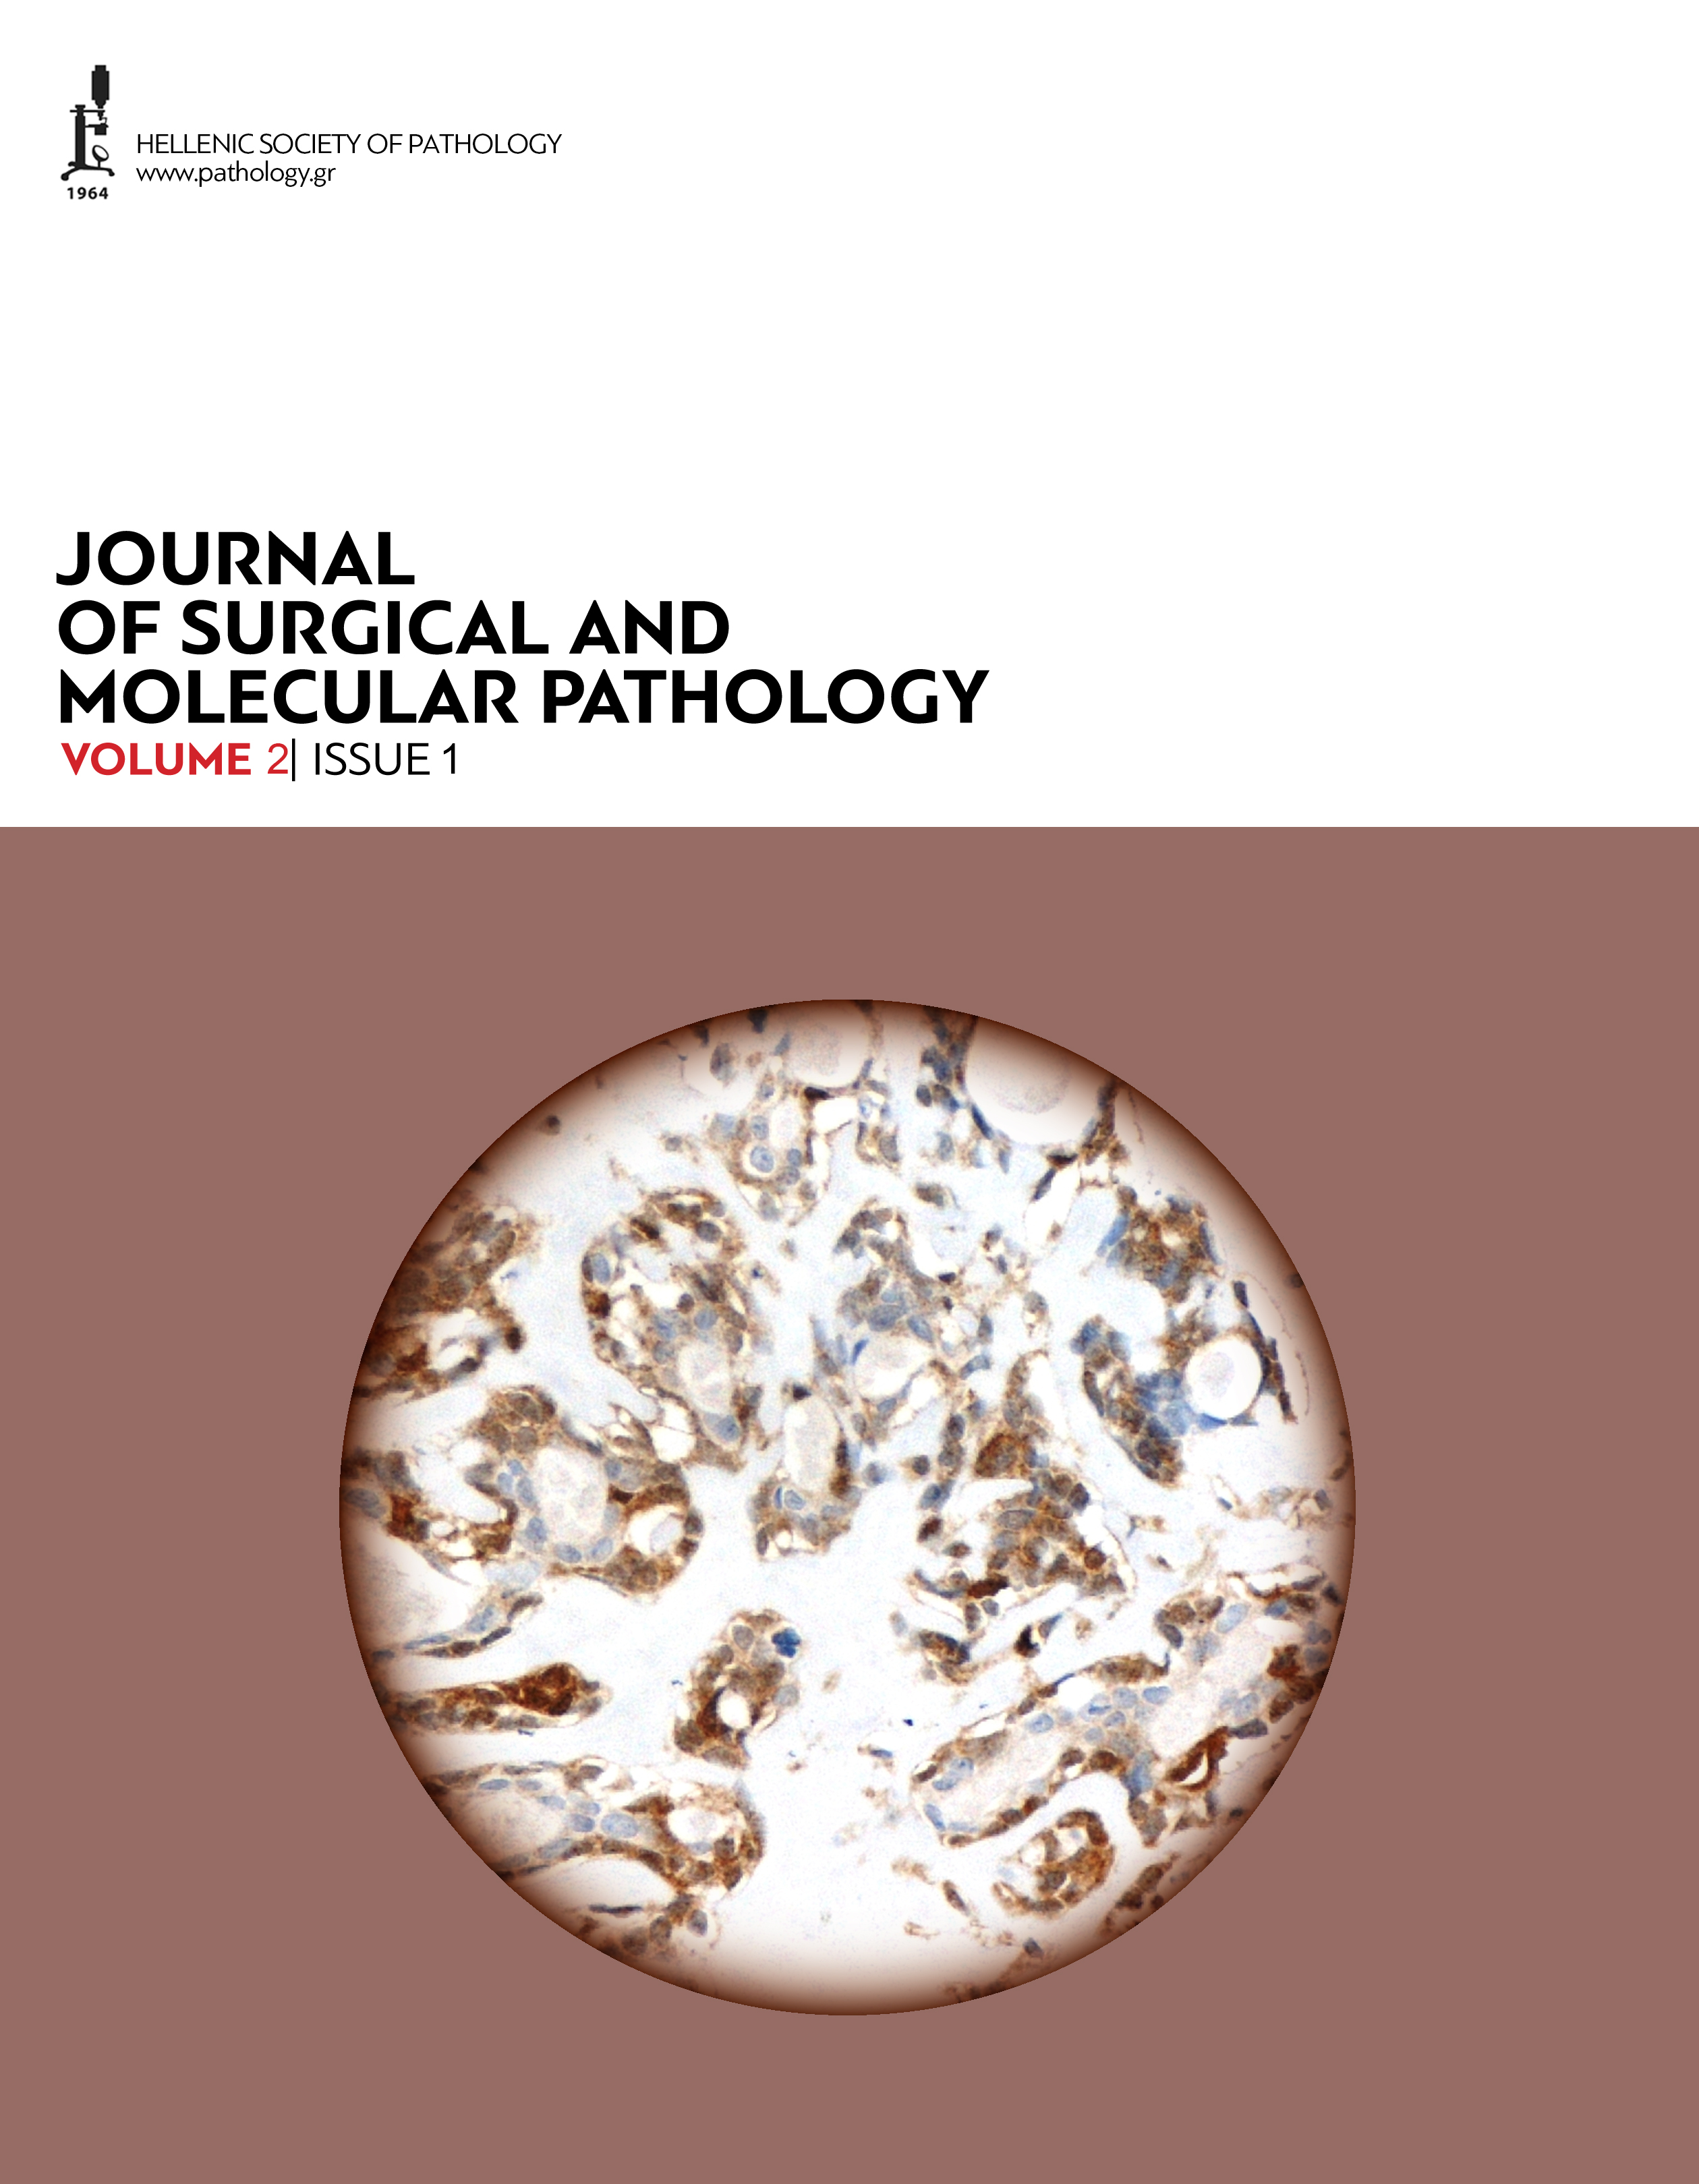 Journal of Surgical and Molecular Pathology, Volume 2, Issue 1 (2016)